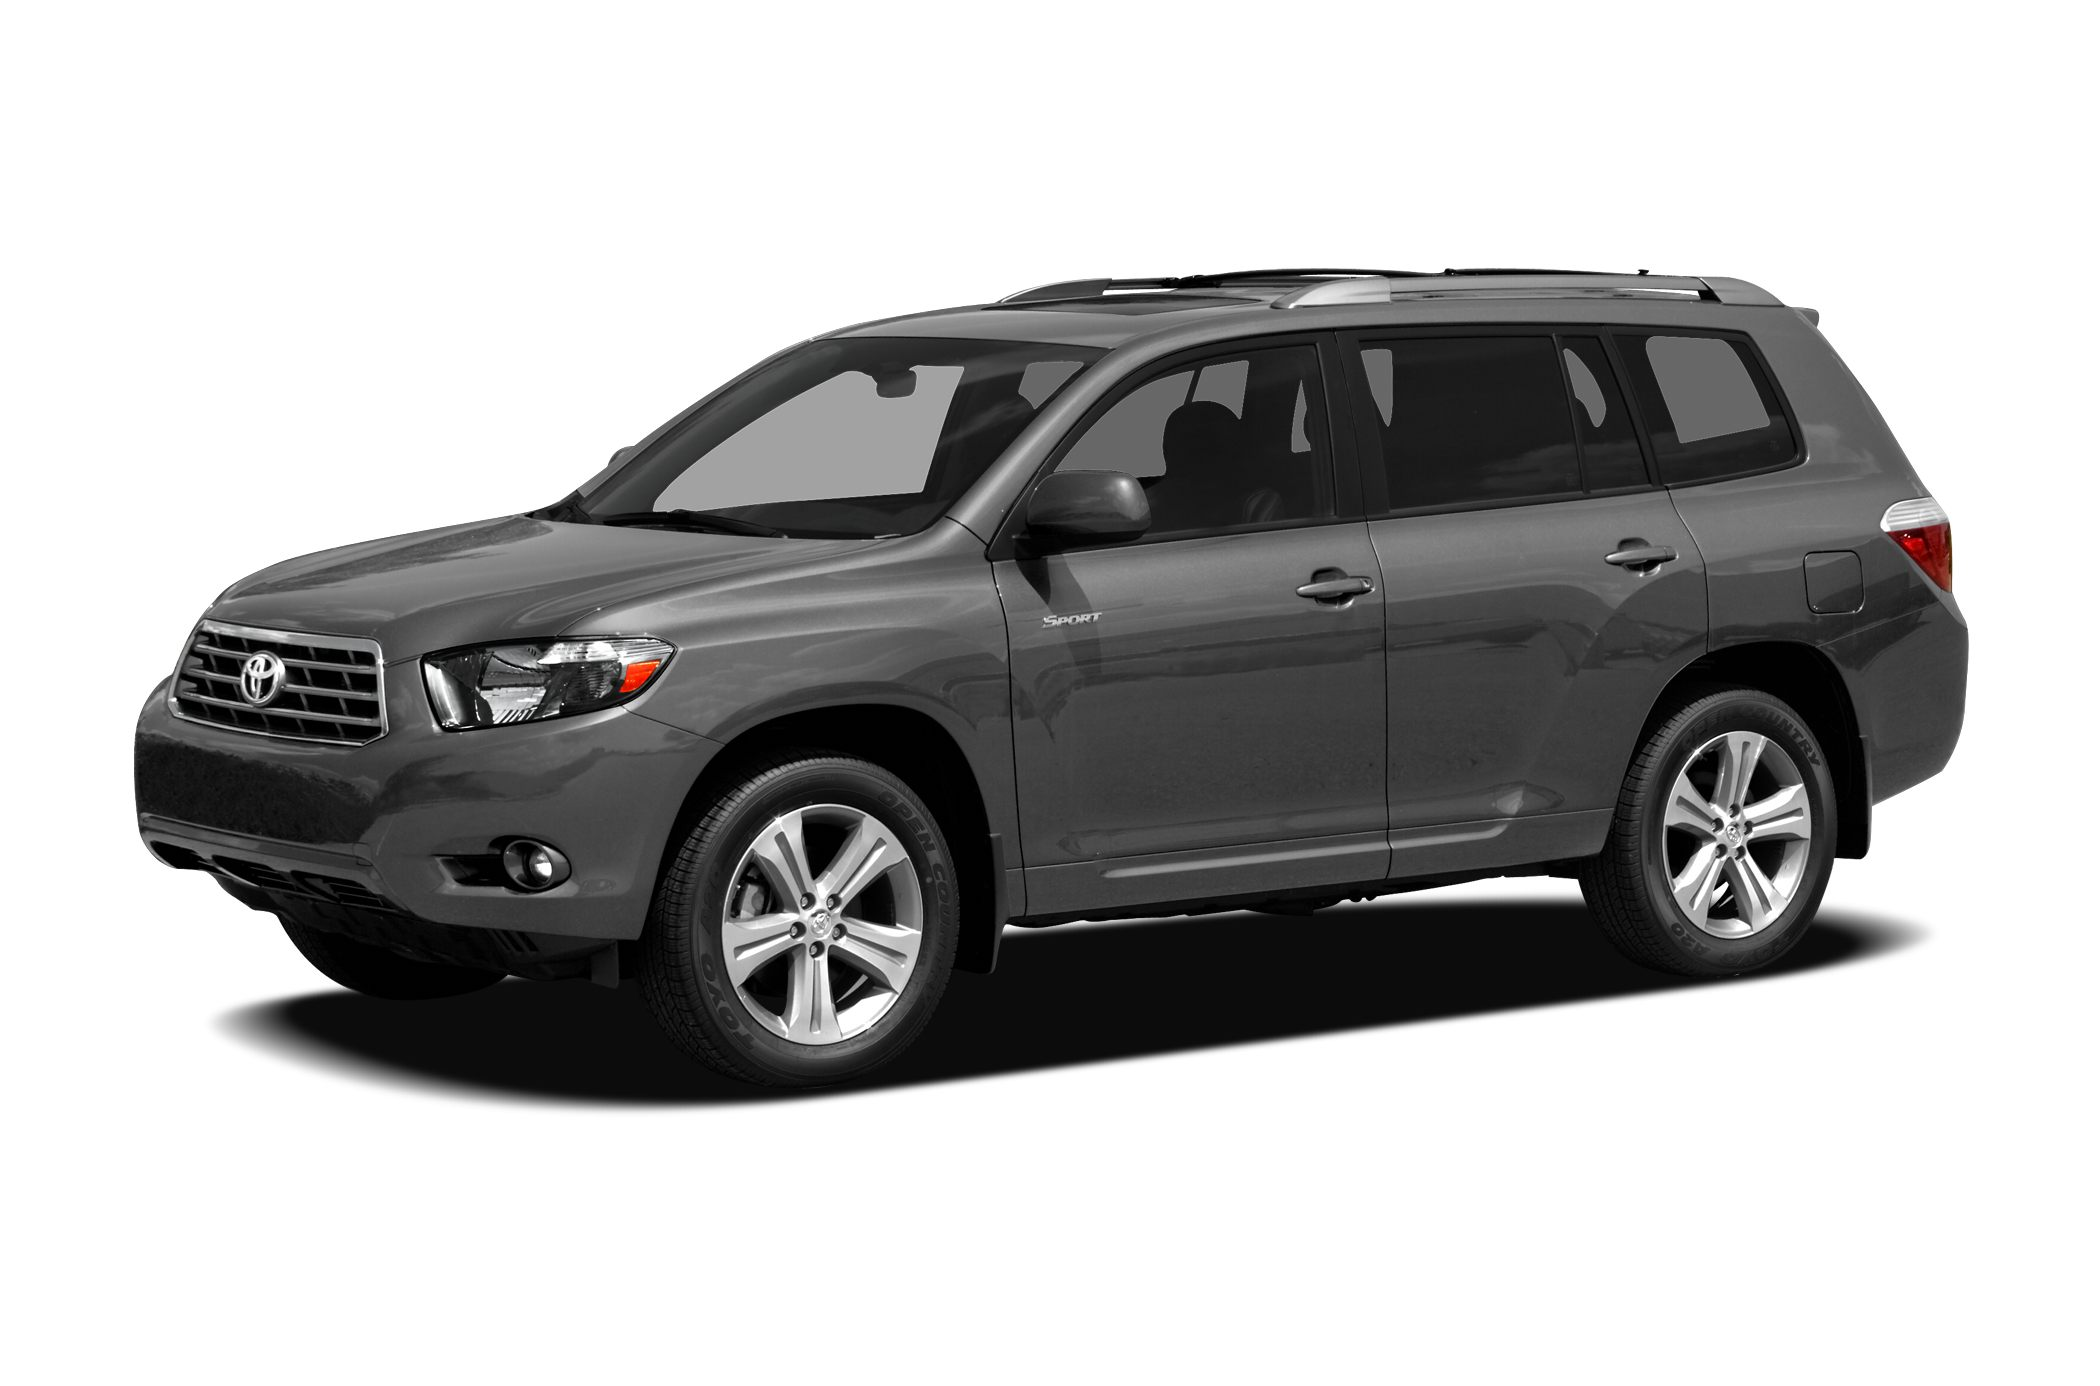 2008 Toyota Highlander Pricing And Specs